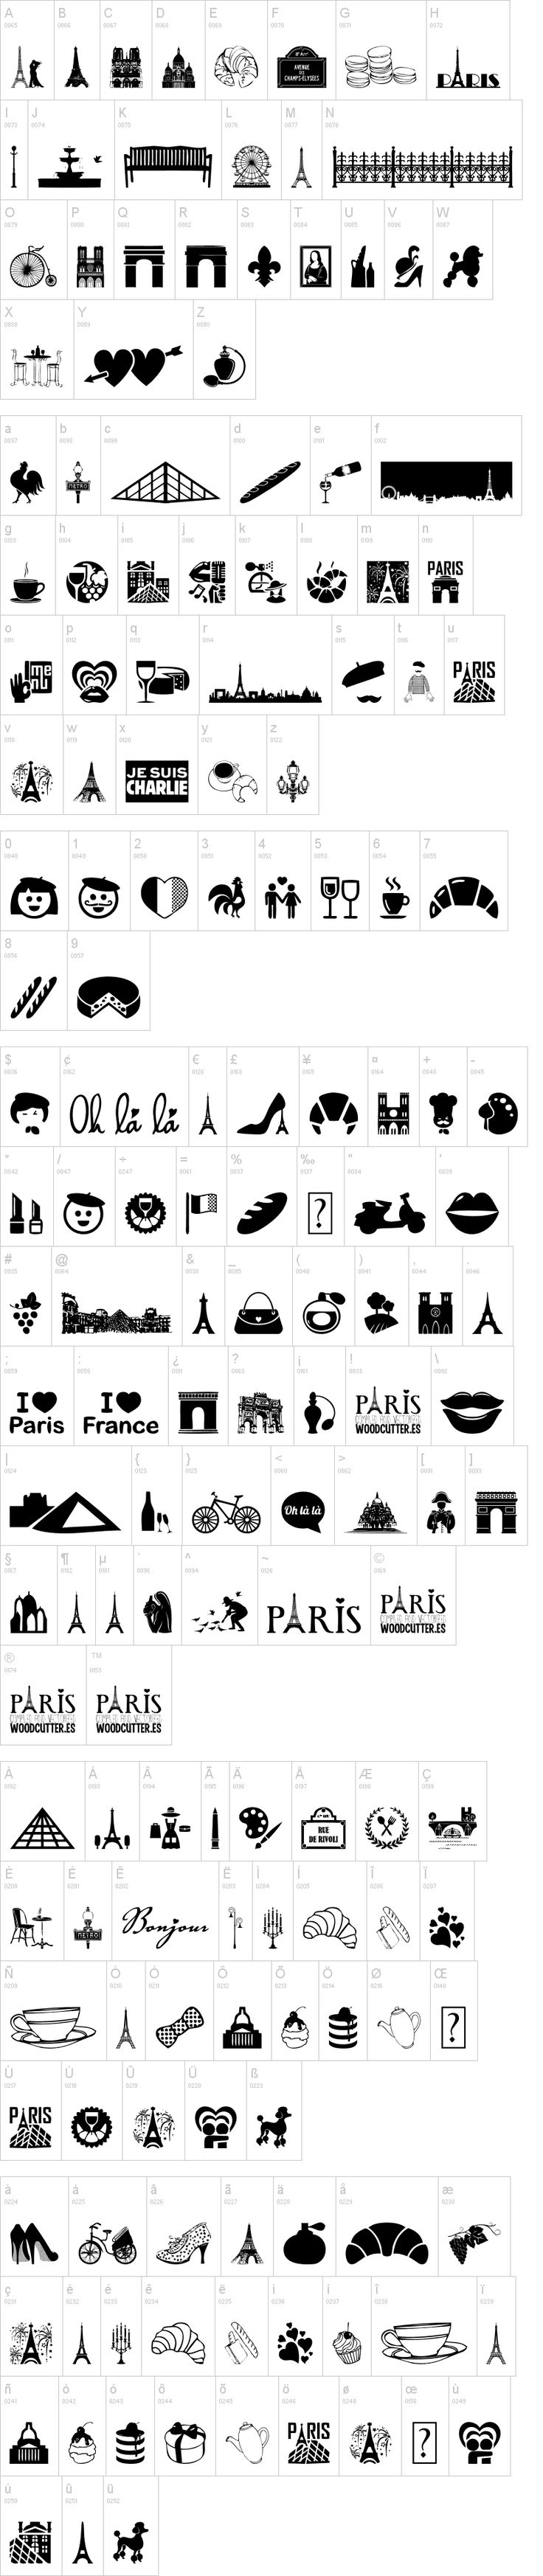 17 Best images about Graphic Components on Pinterest | Human ...